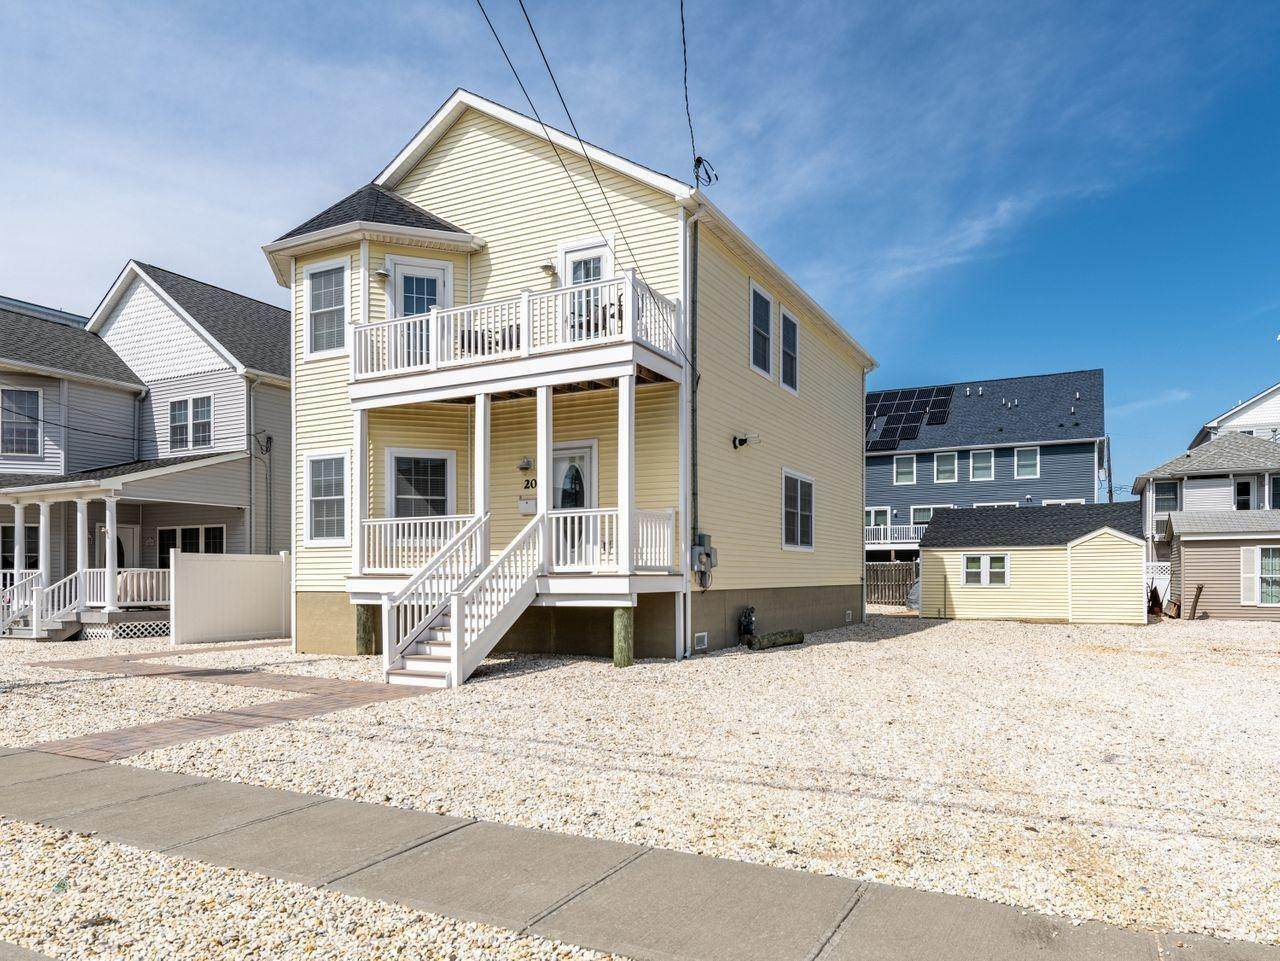 Single Family Homes for Sale at 20 8th Avenue Seaside Heights, New Jersey 08751 United States